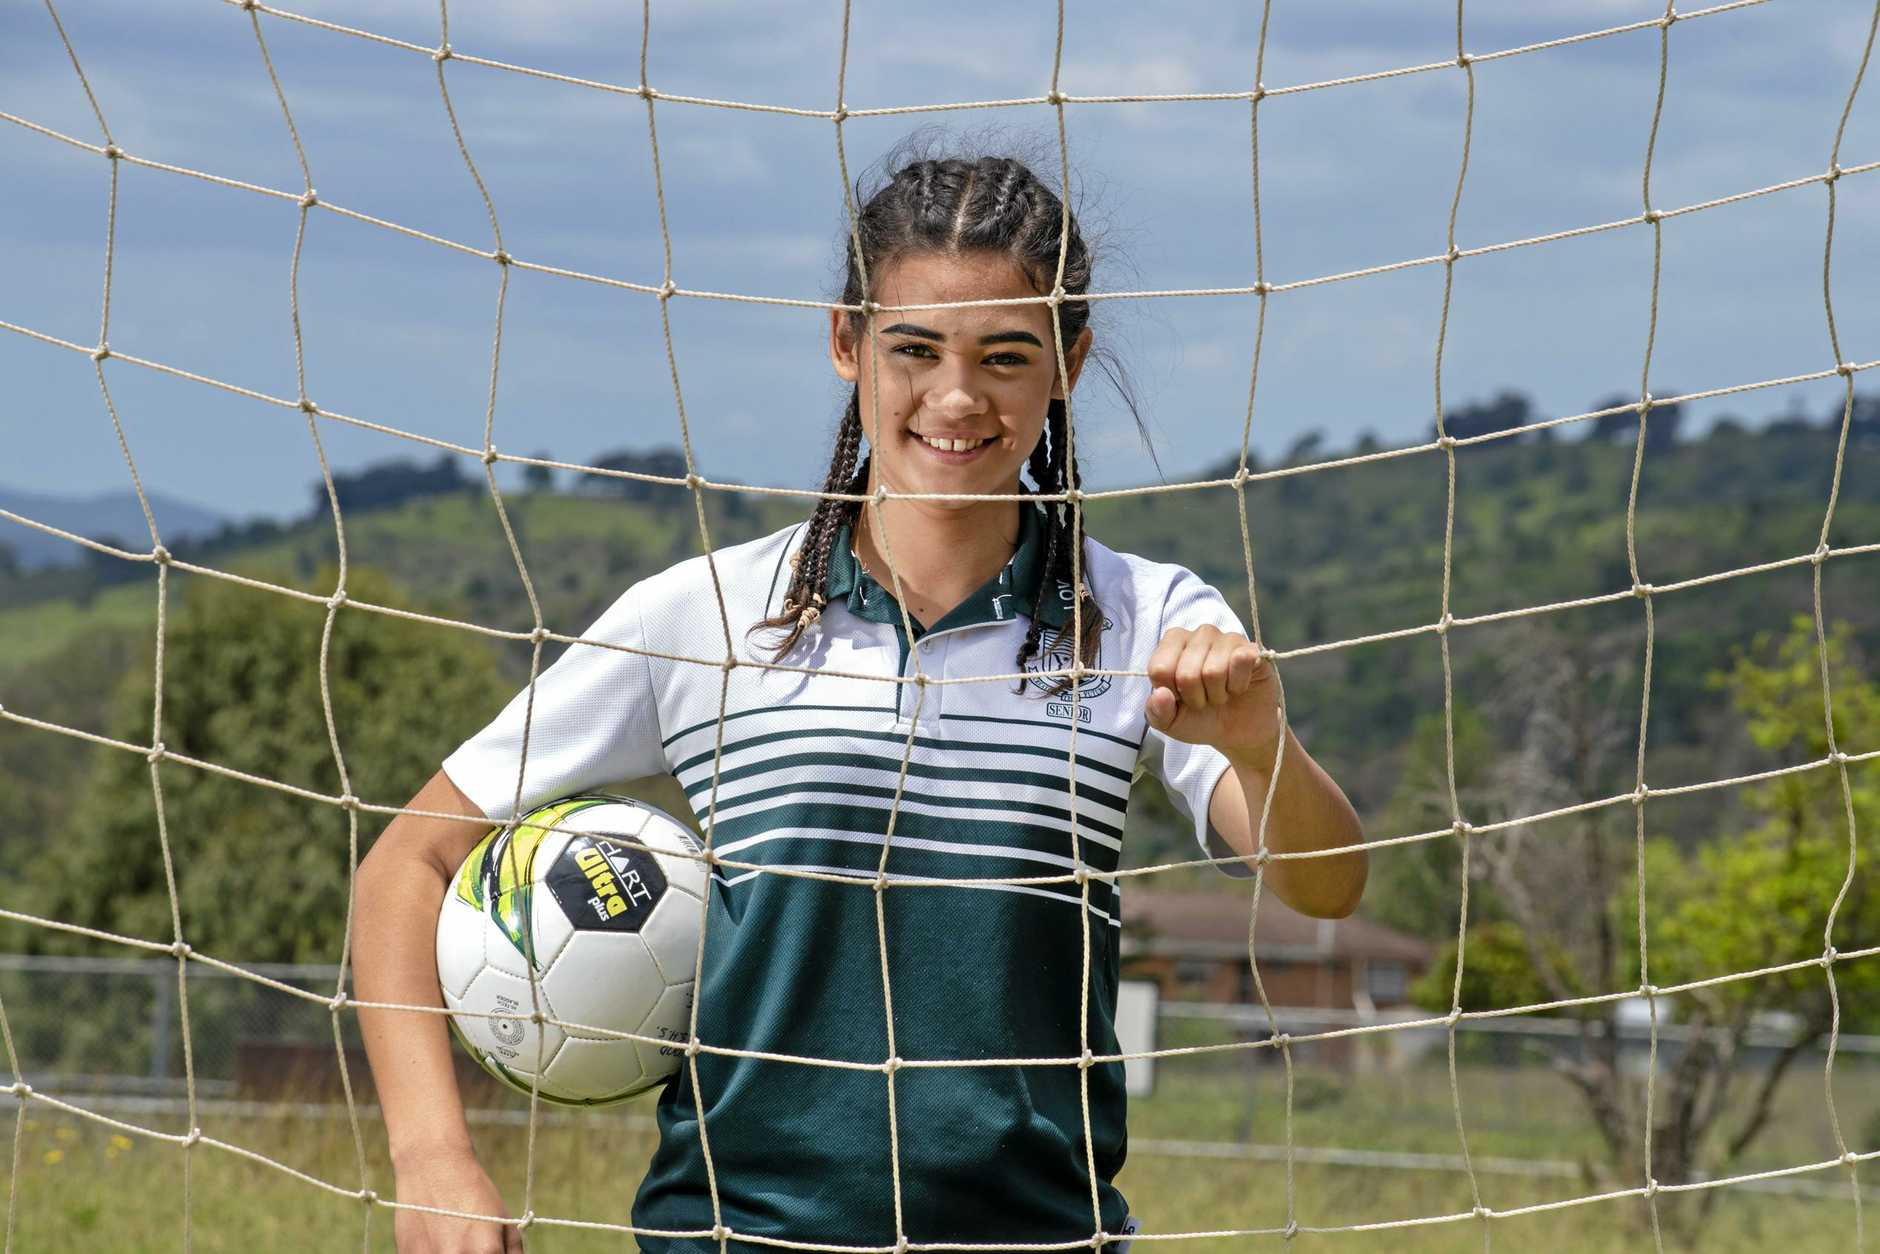 KICKING GOALS: Lowood State High School student Shayla McGill, 17, has been selected for the Western Pride under-17 NPL girls team. She is the first student from Lowood SHS to be selected for the program.